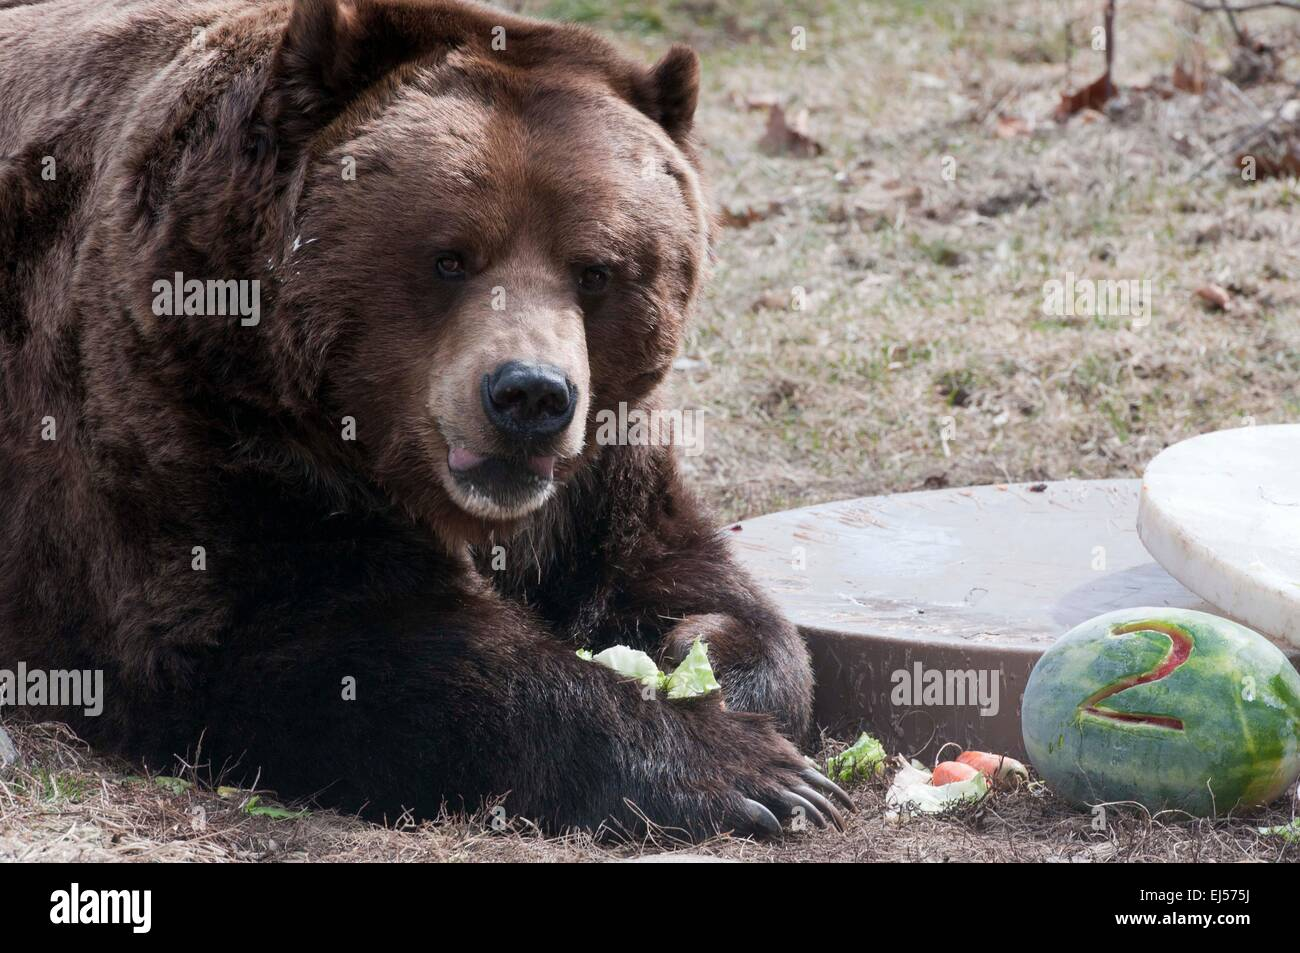 Chicago USA 21st Mar 2015 One Of A Pair Grizzly Bears Enjoys Himself With Food On His 20 Year Old Birthday Party At The Brookfield Zoo